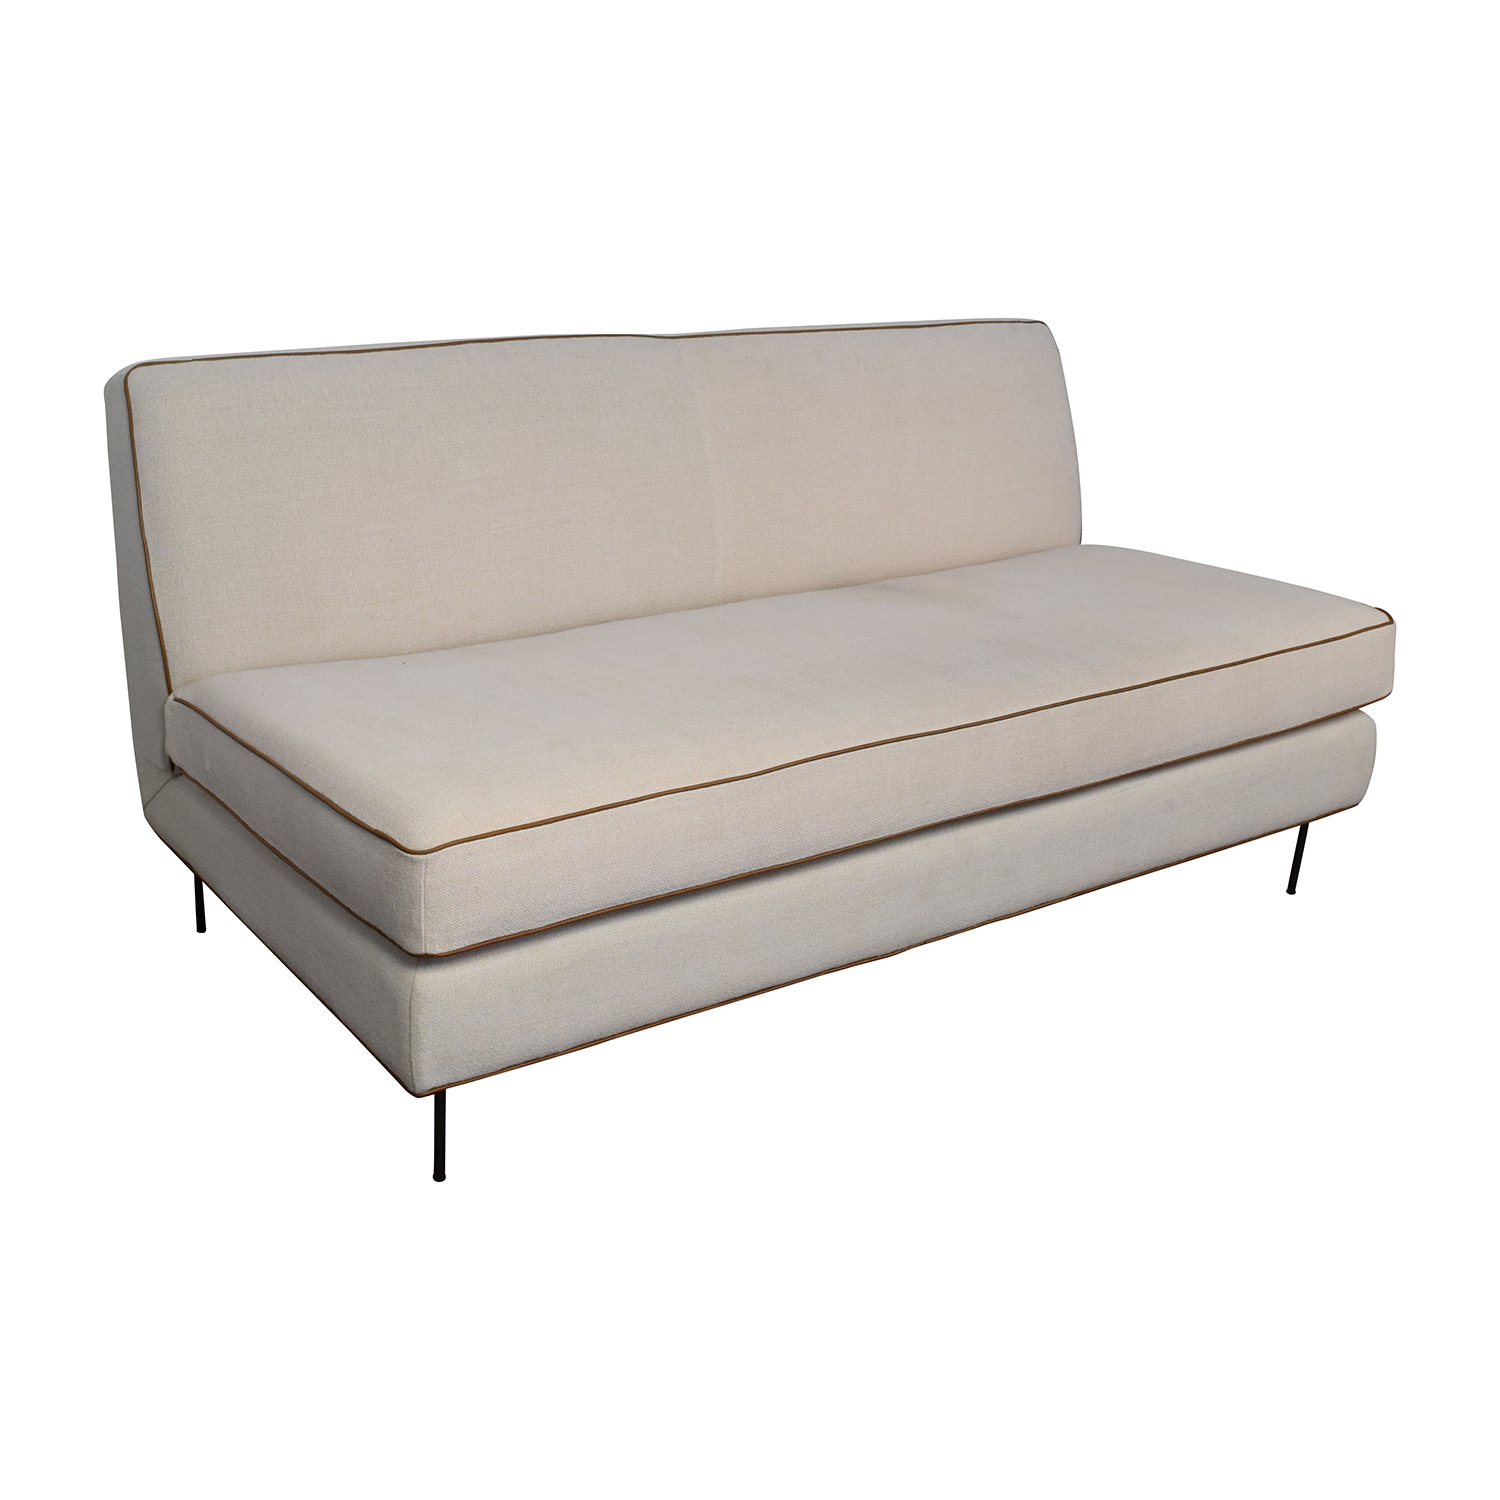 westelm sofa bed raymour and flanigan leather 56 off west elm commune armless sofas